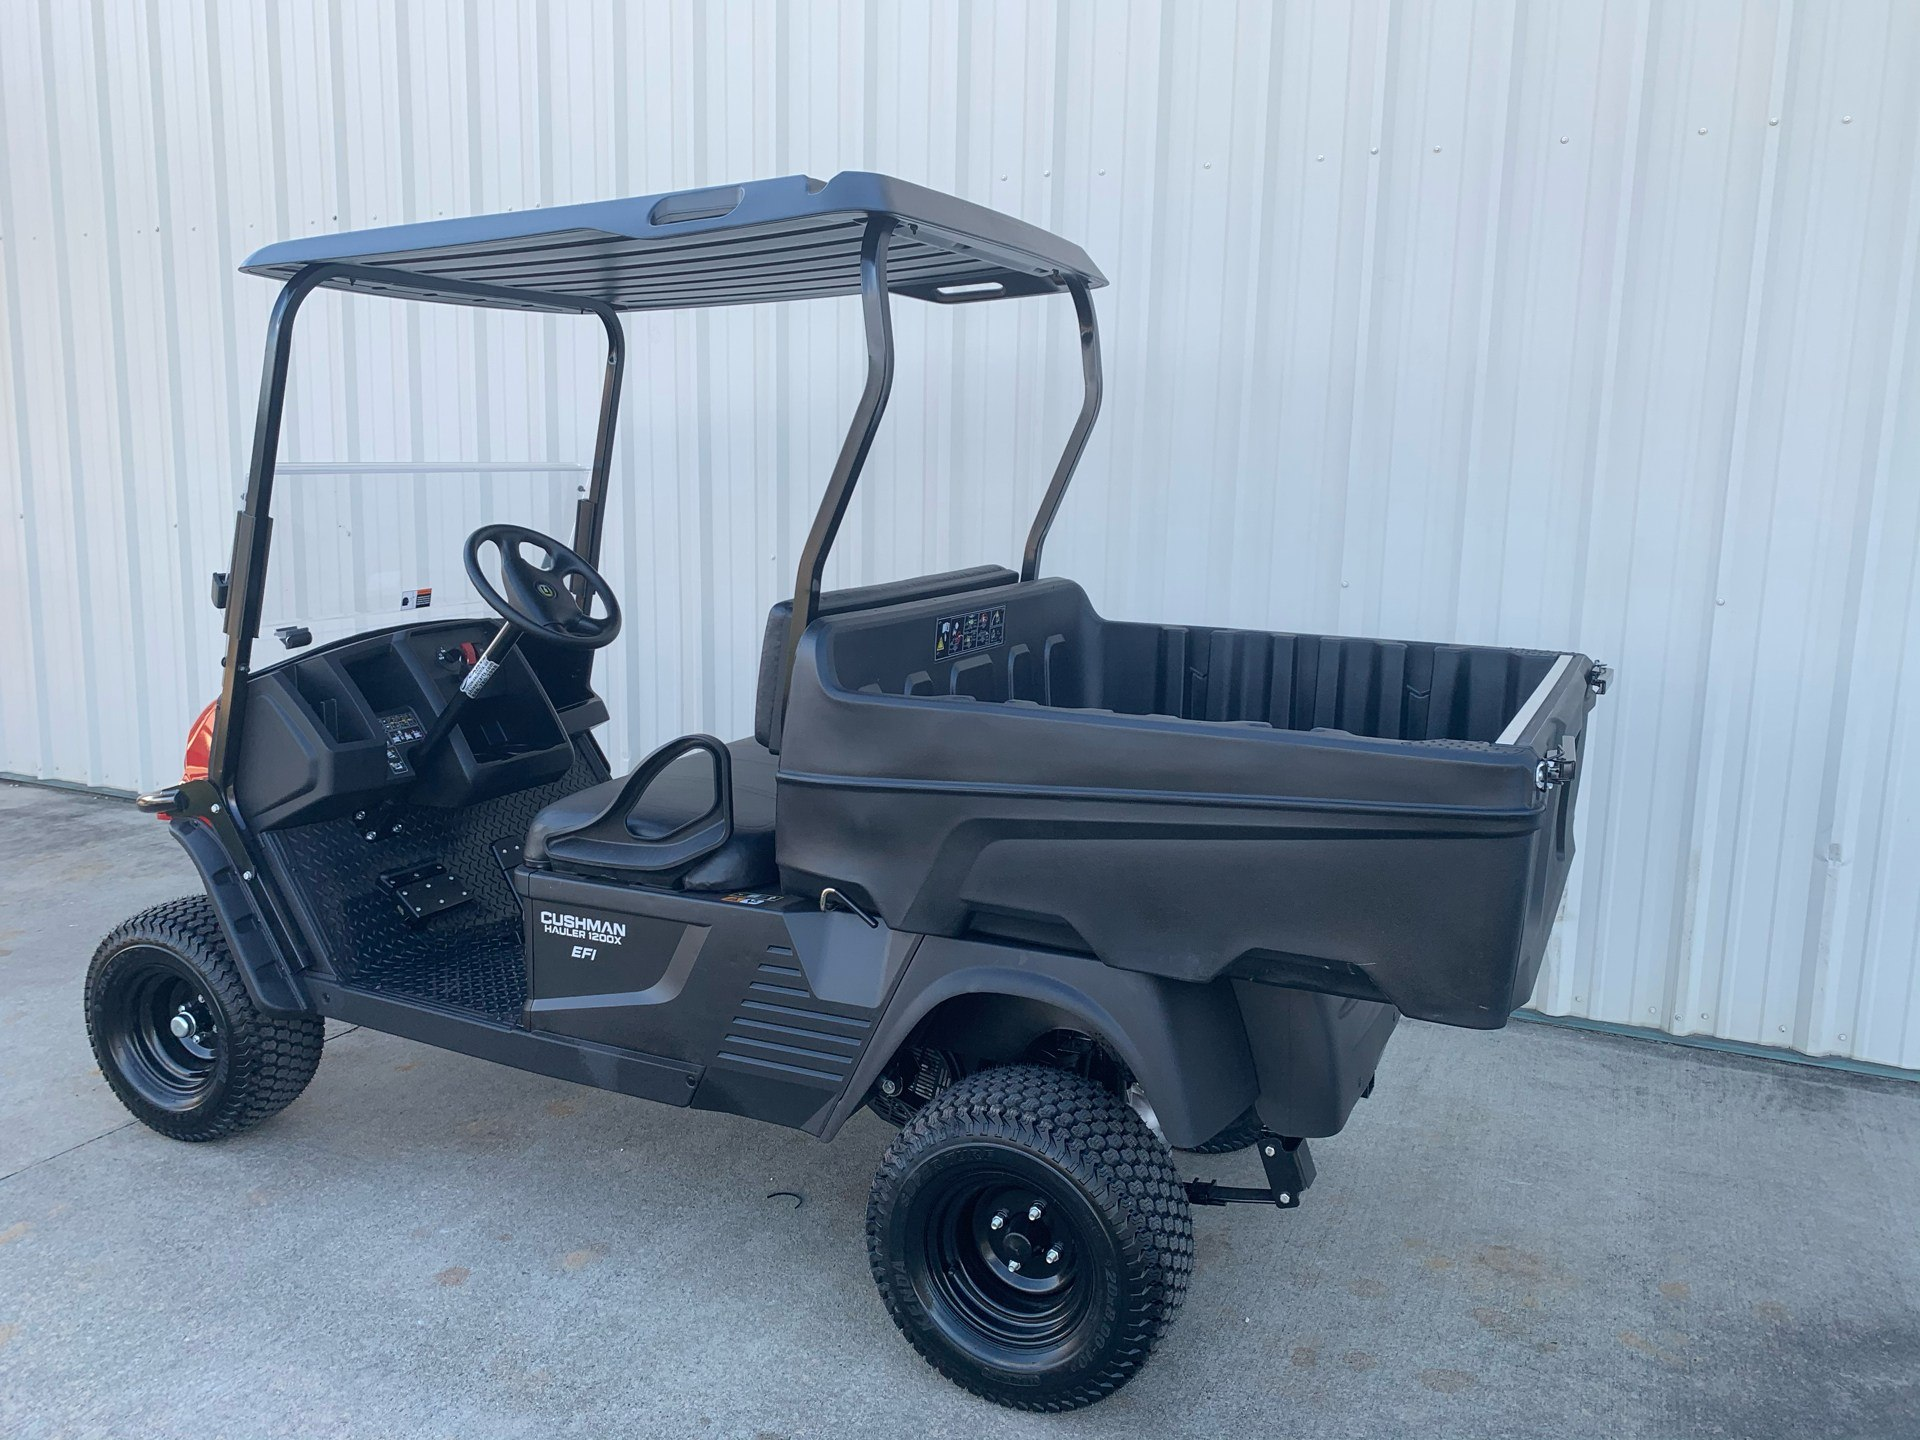 2021 CUSHMAN HAULER 1200 X EFI in Tifton, Georgia - Photo 2